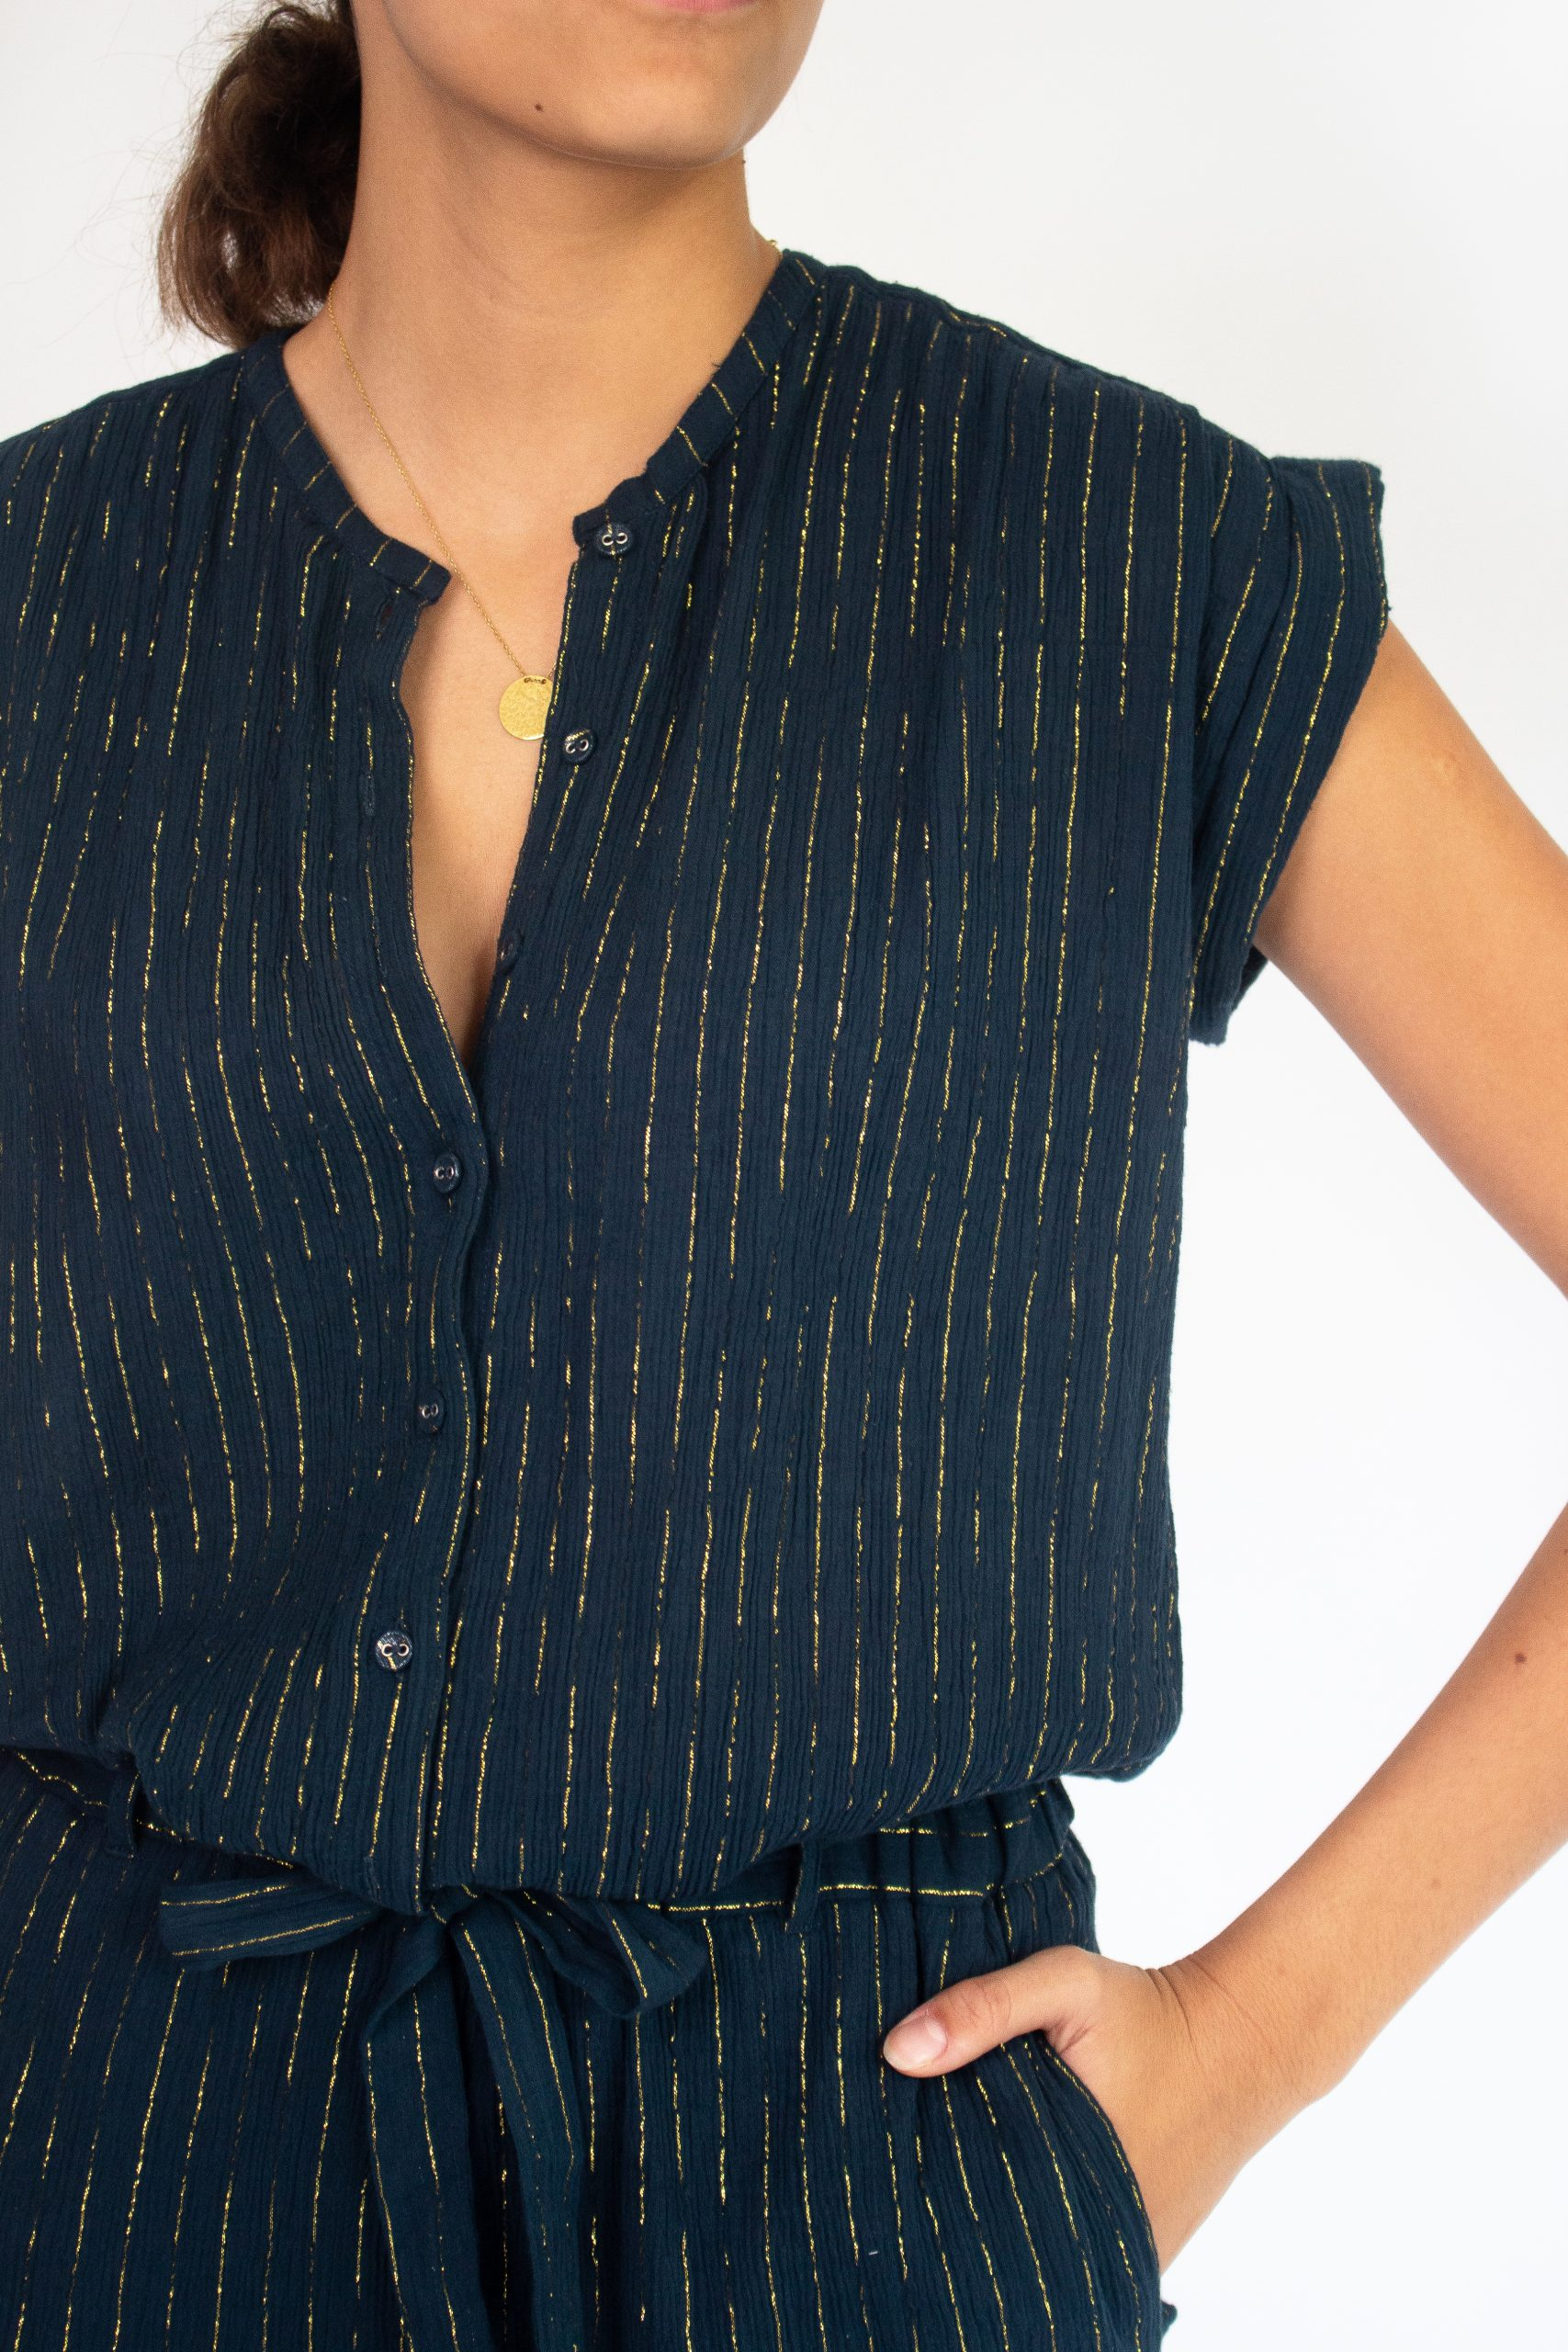 midnight blue playsuit for women with gold stripes fashion capsule by juliette